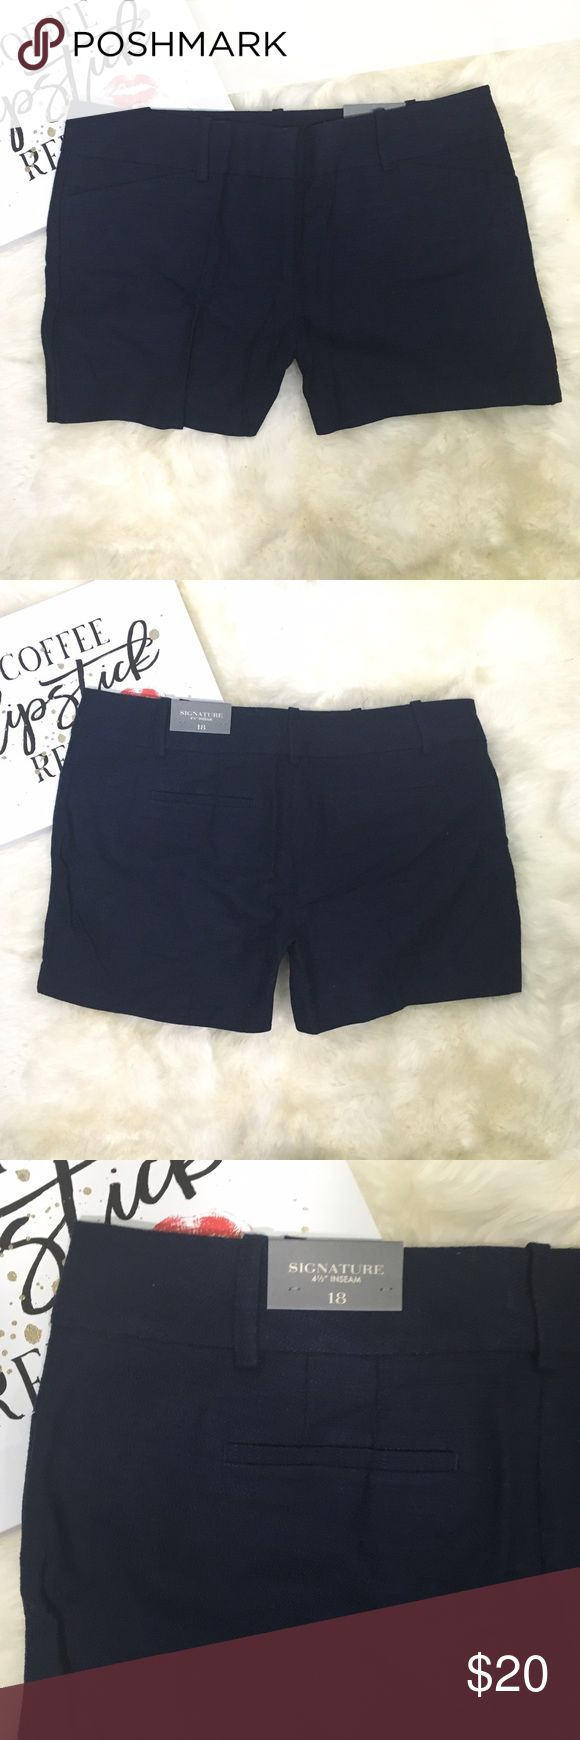 Ann Taylor Factory Signature Blue Shorts 18 Ann Taylor Factory Signature Womens Blue Shorts Plus Size 18   Details: This short is from the Ann Taylor Outlet   Condition: New with Tag  Size: 18 Color: Blue Materials: 85% Cotton, 8% Linen, 7% Rayon  Measurements in INCHES and laying flat (approximate) Waist: 20.75 Inseam: 4.5 Rise: 12 🌸BUNDLE AND SAVE  🌸NO TRADES 🌸REASONABLE OFFERS CONSIDERED  🌸FEEL FREE TO ASK QUESTIONS 🌸I DO NOT MODEL Ann Taylor Shorts